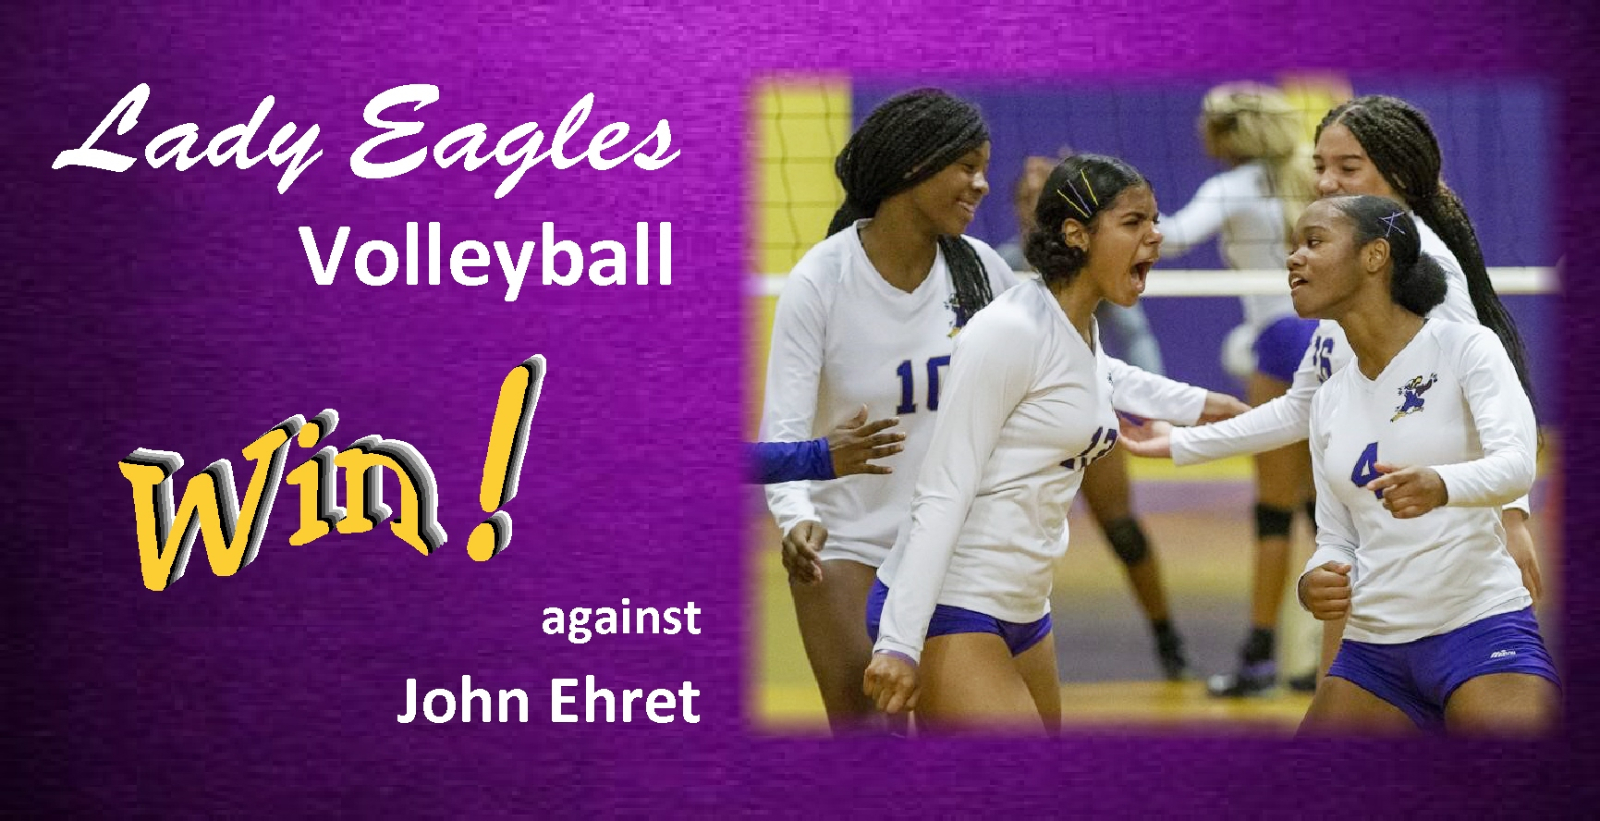 Lady Eagles Volleyball Team Opens 2020 Season with a Victory